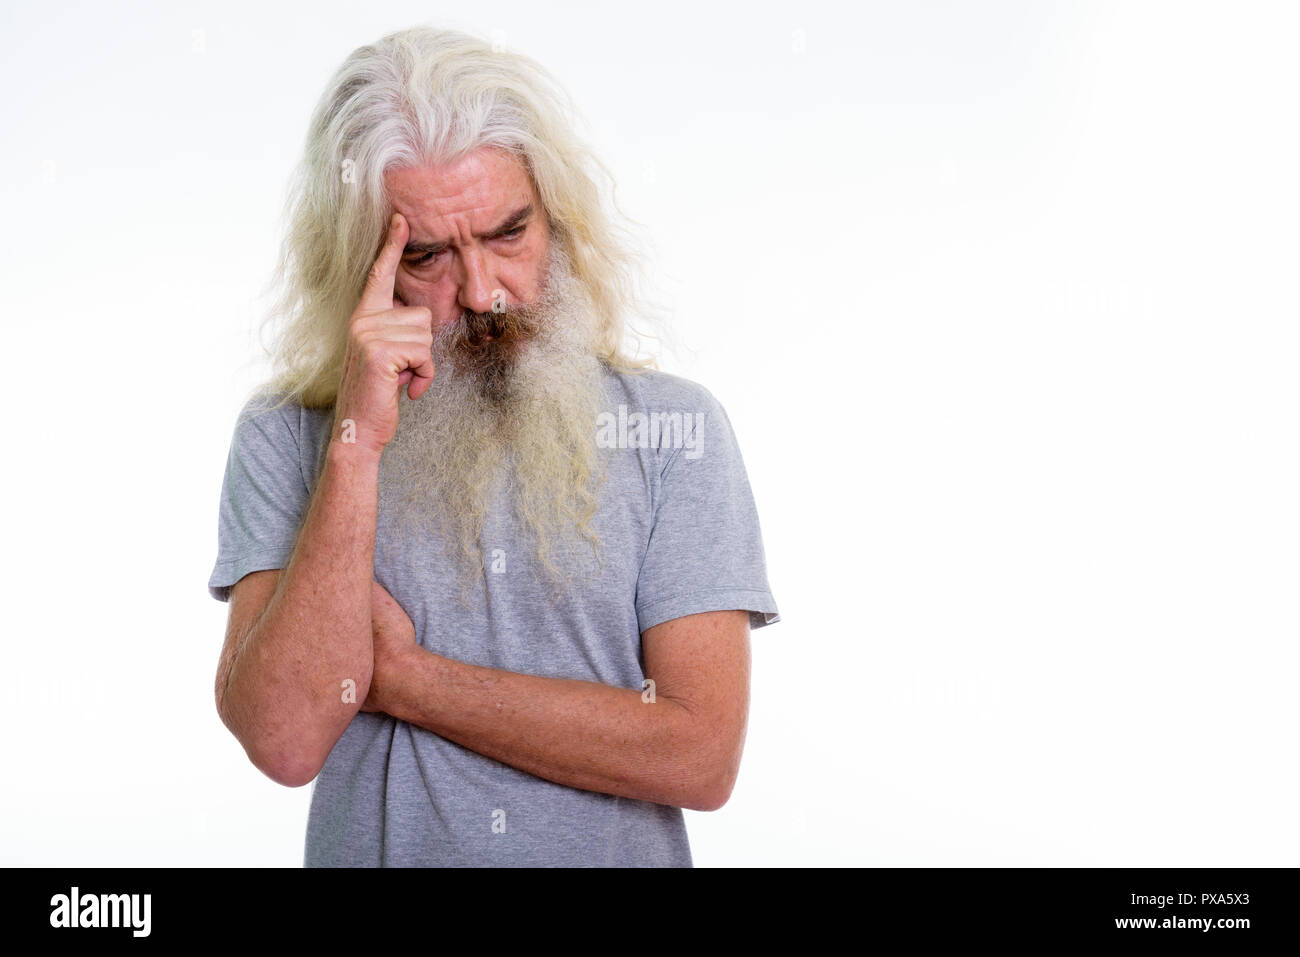 Studio shot of senior bearded man looking sad while thinking  - Stock Image